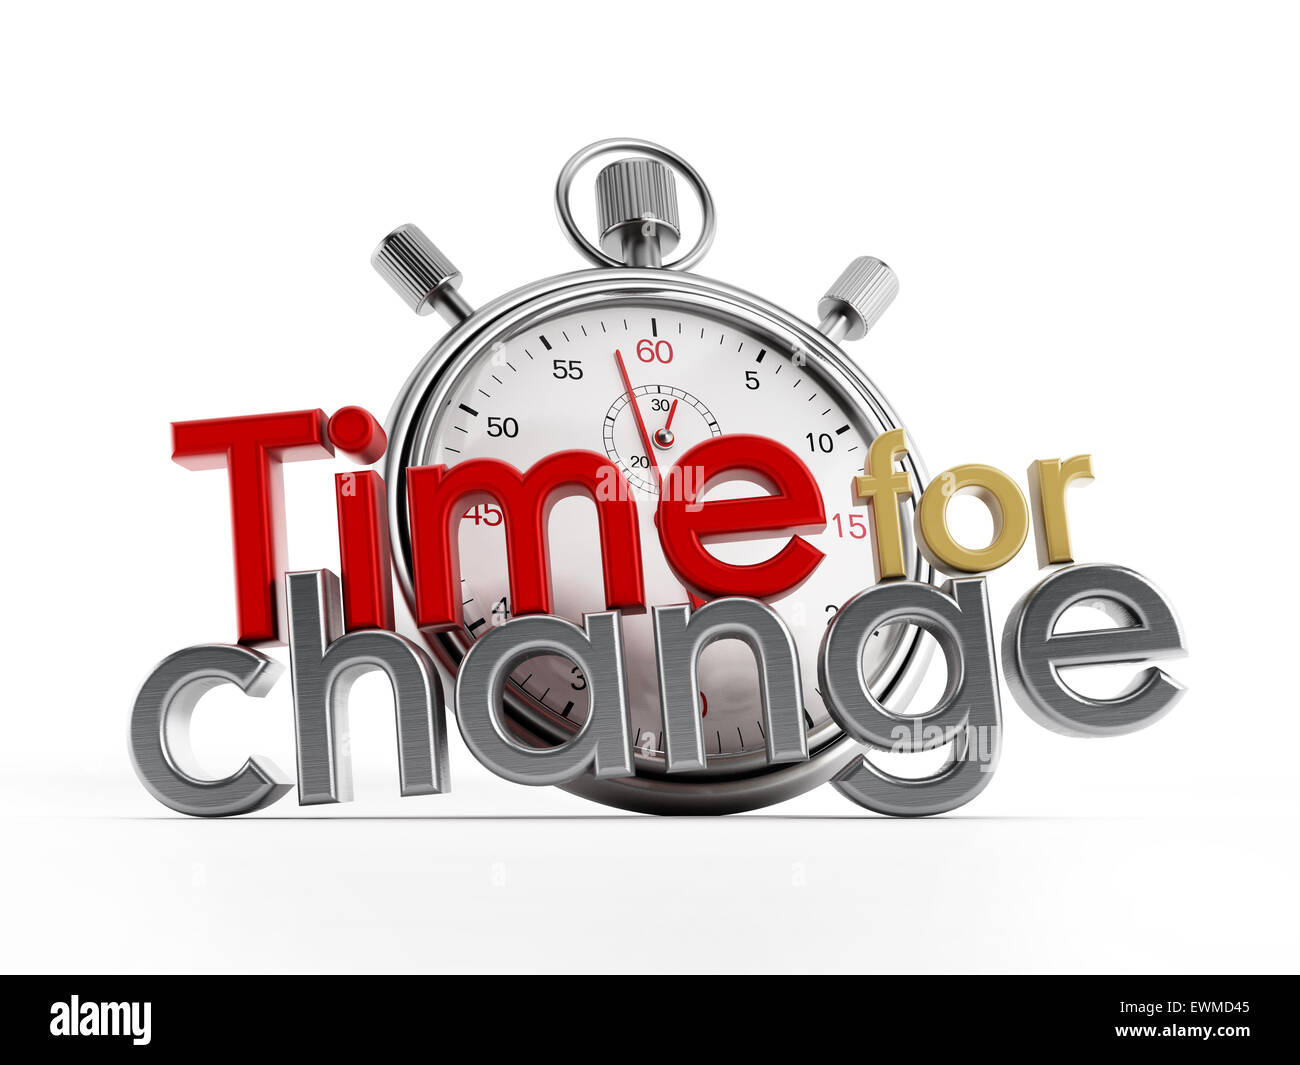 Time for change text and chronometer isolated on white background - Stock Image